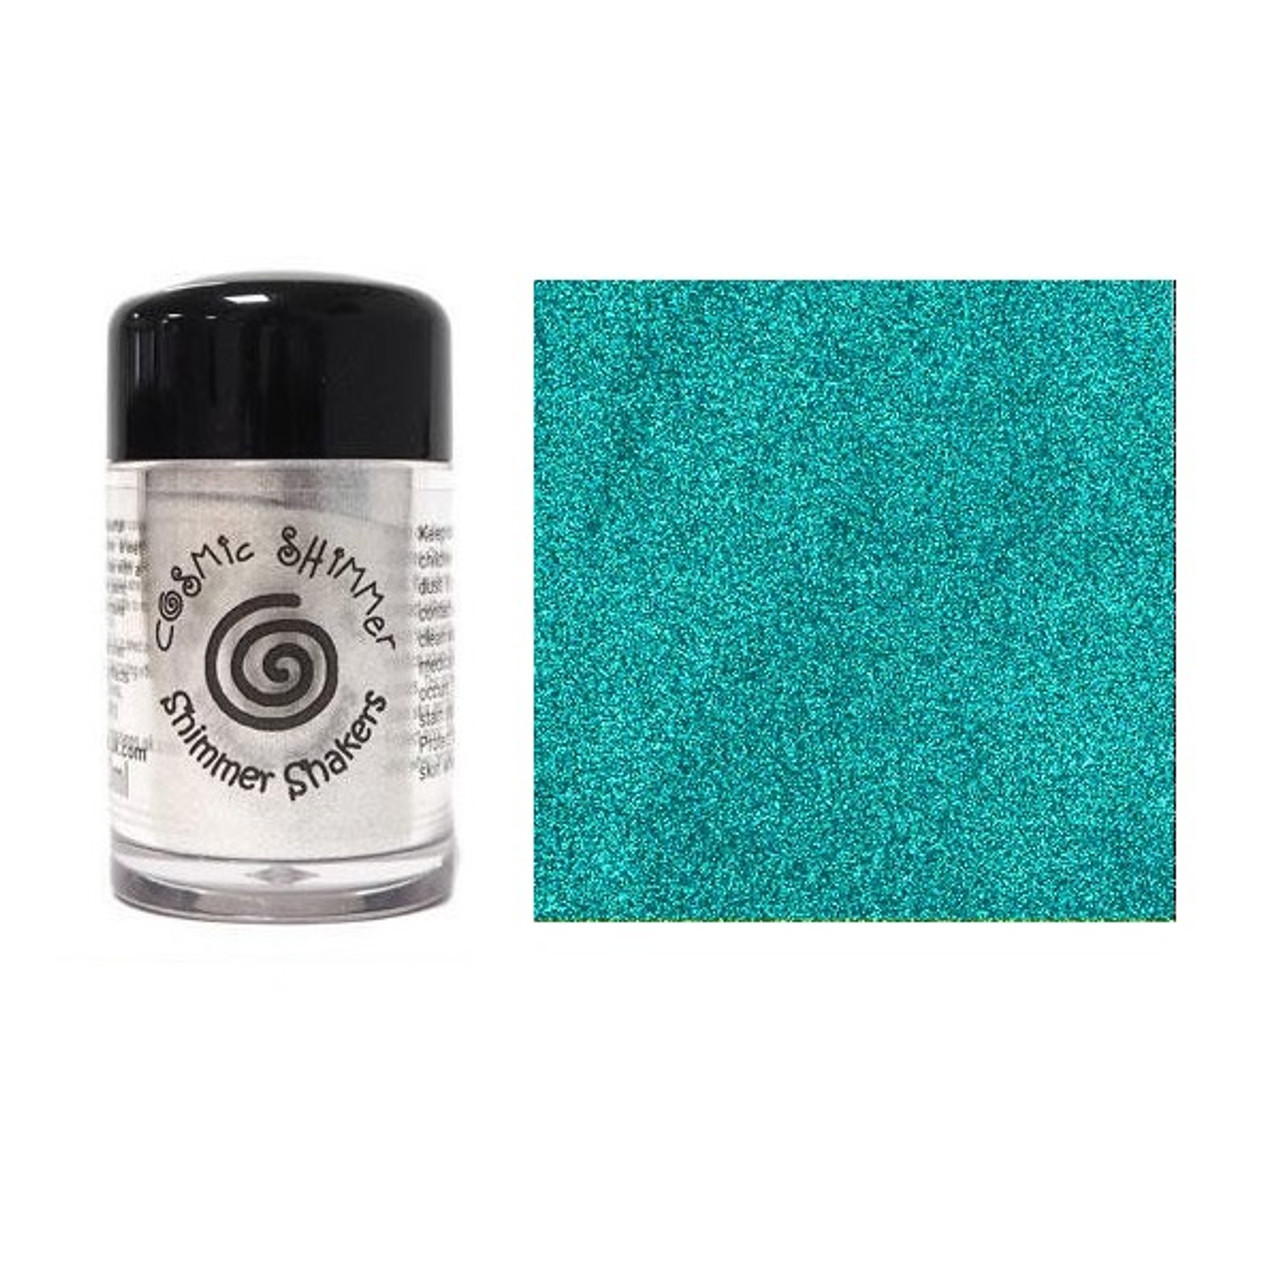 Creative Expressions Cosmic Shimmer Sparkle Shaker 10ml - Peacock Satin